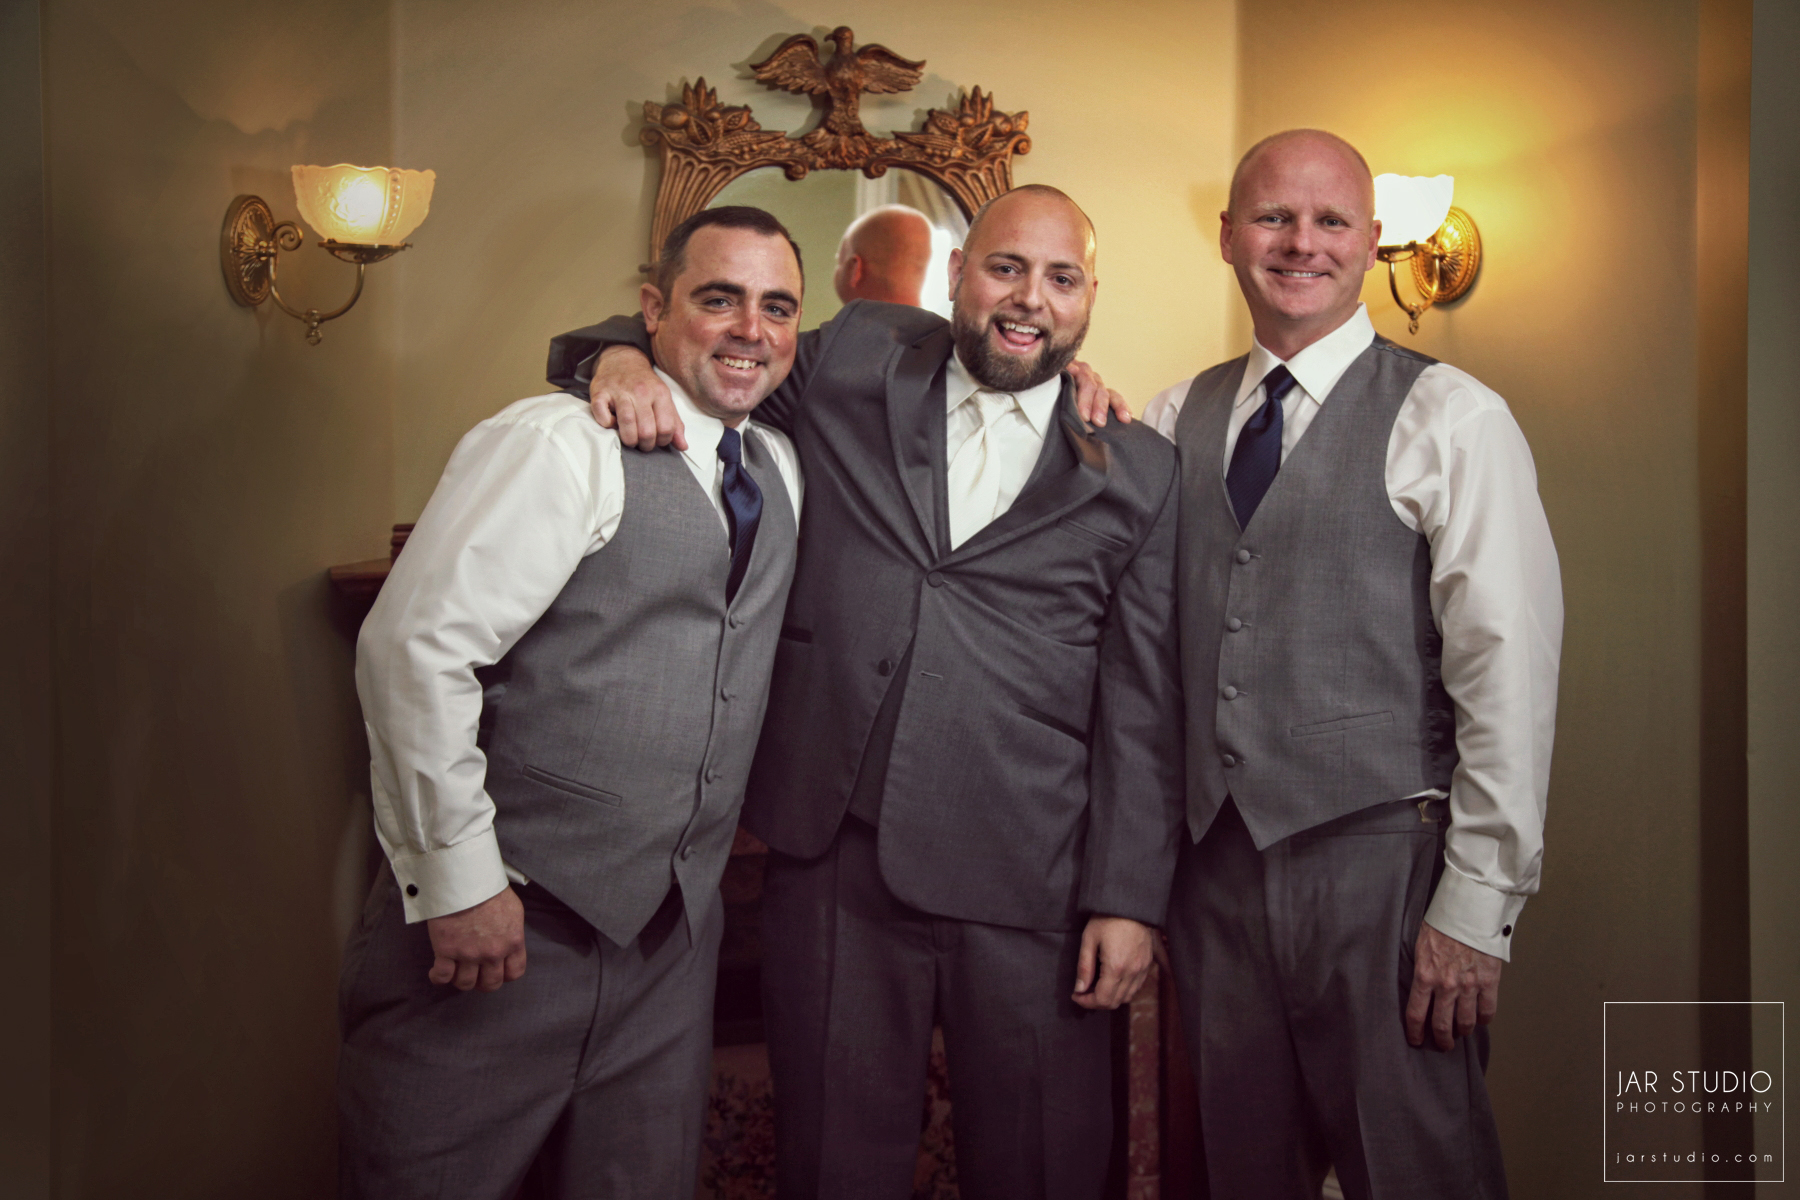 09-groomsmen-dr-phillips-house-orlando-jarstudio.JPG